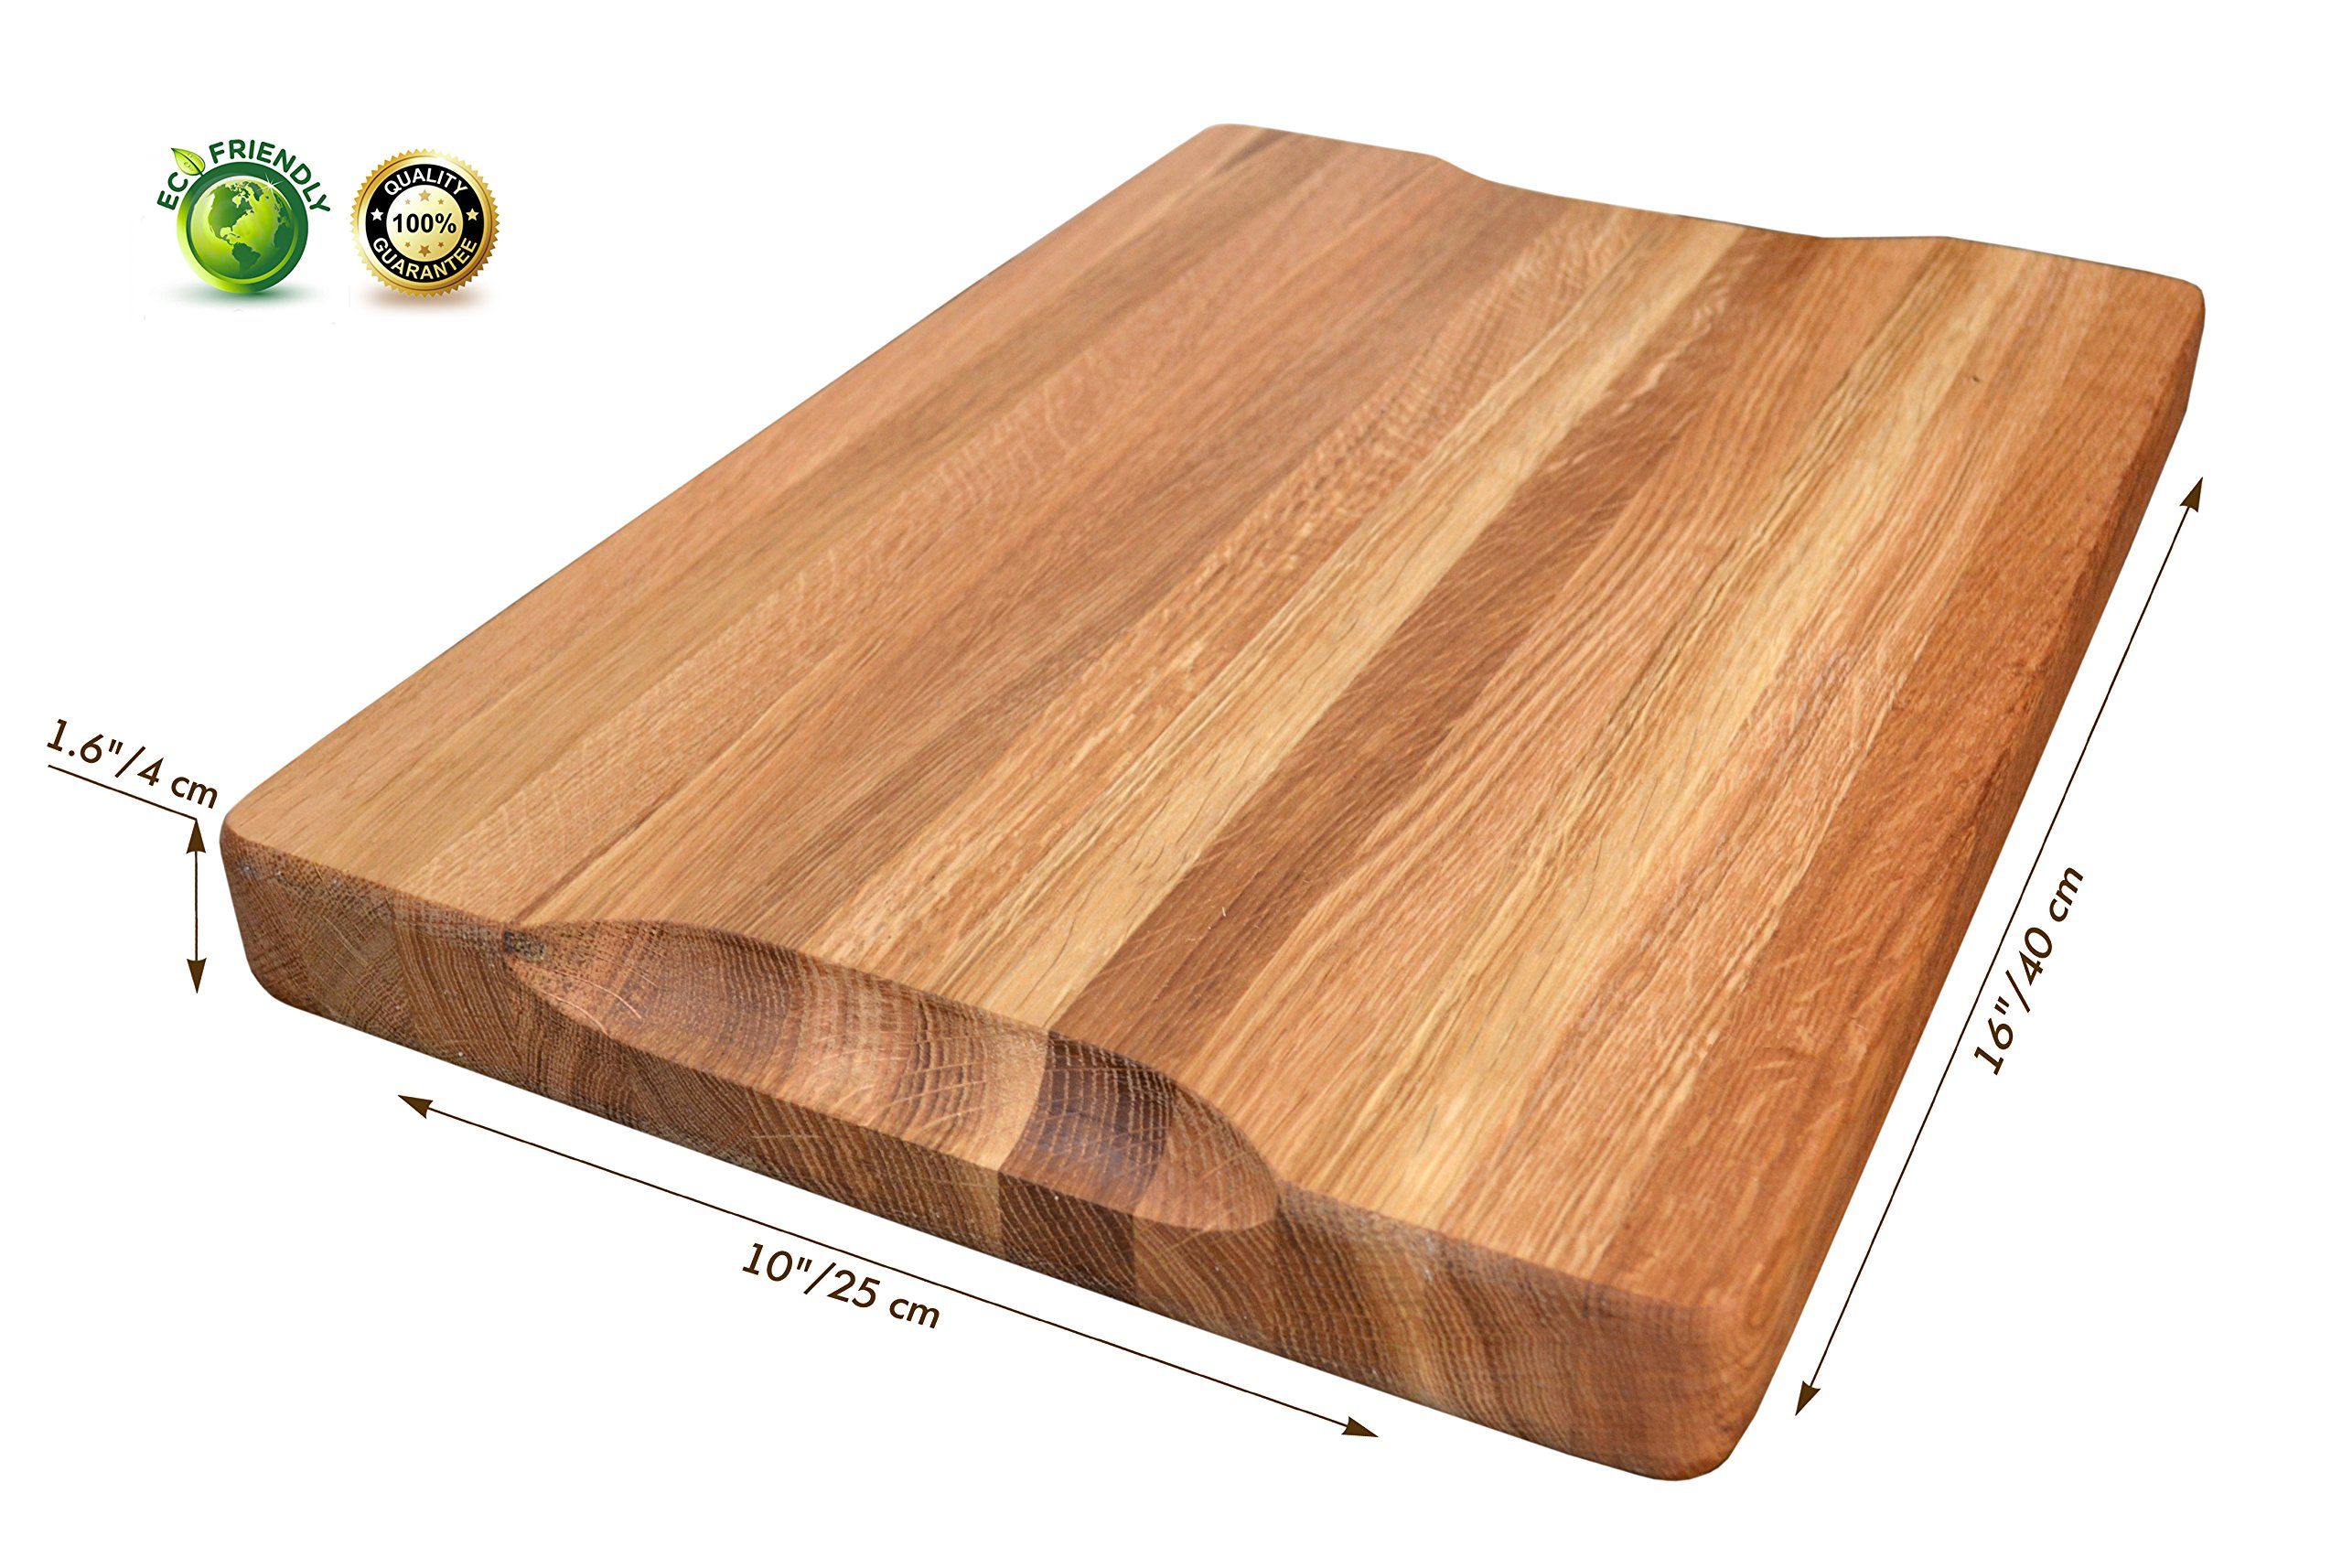 NaturalDesign Cutting Board 16 x 10 x 1.6 inch Edge Grain Chopping Block Wood: Maple & Oak Hardwood Extra Thick Appetizer Serving Platter Durable & Resistant by NaturalDesign (Image #2)